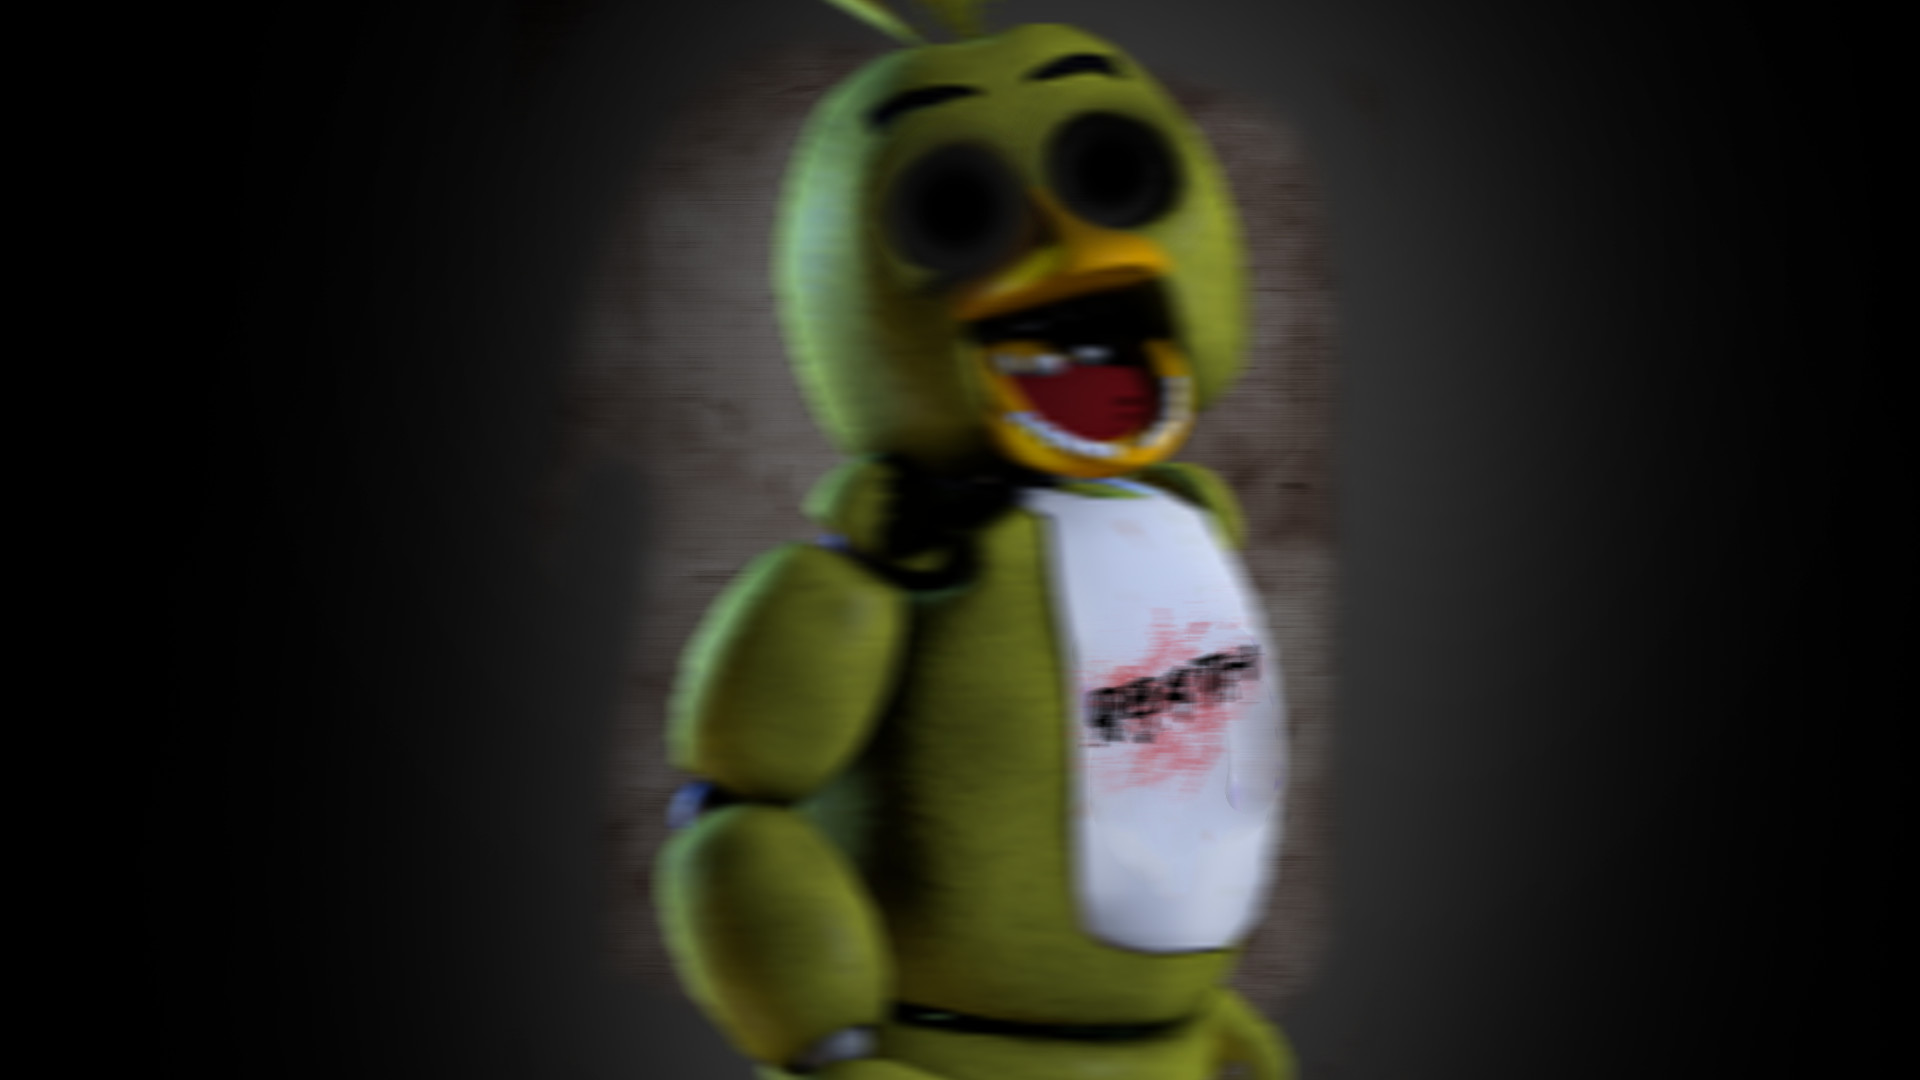 Wallpapers Five Nights at Freddys (83+ images)